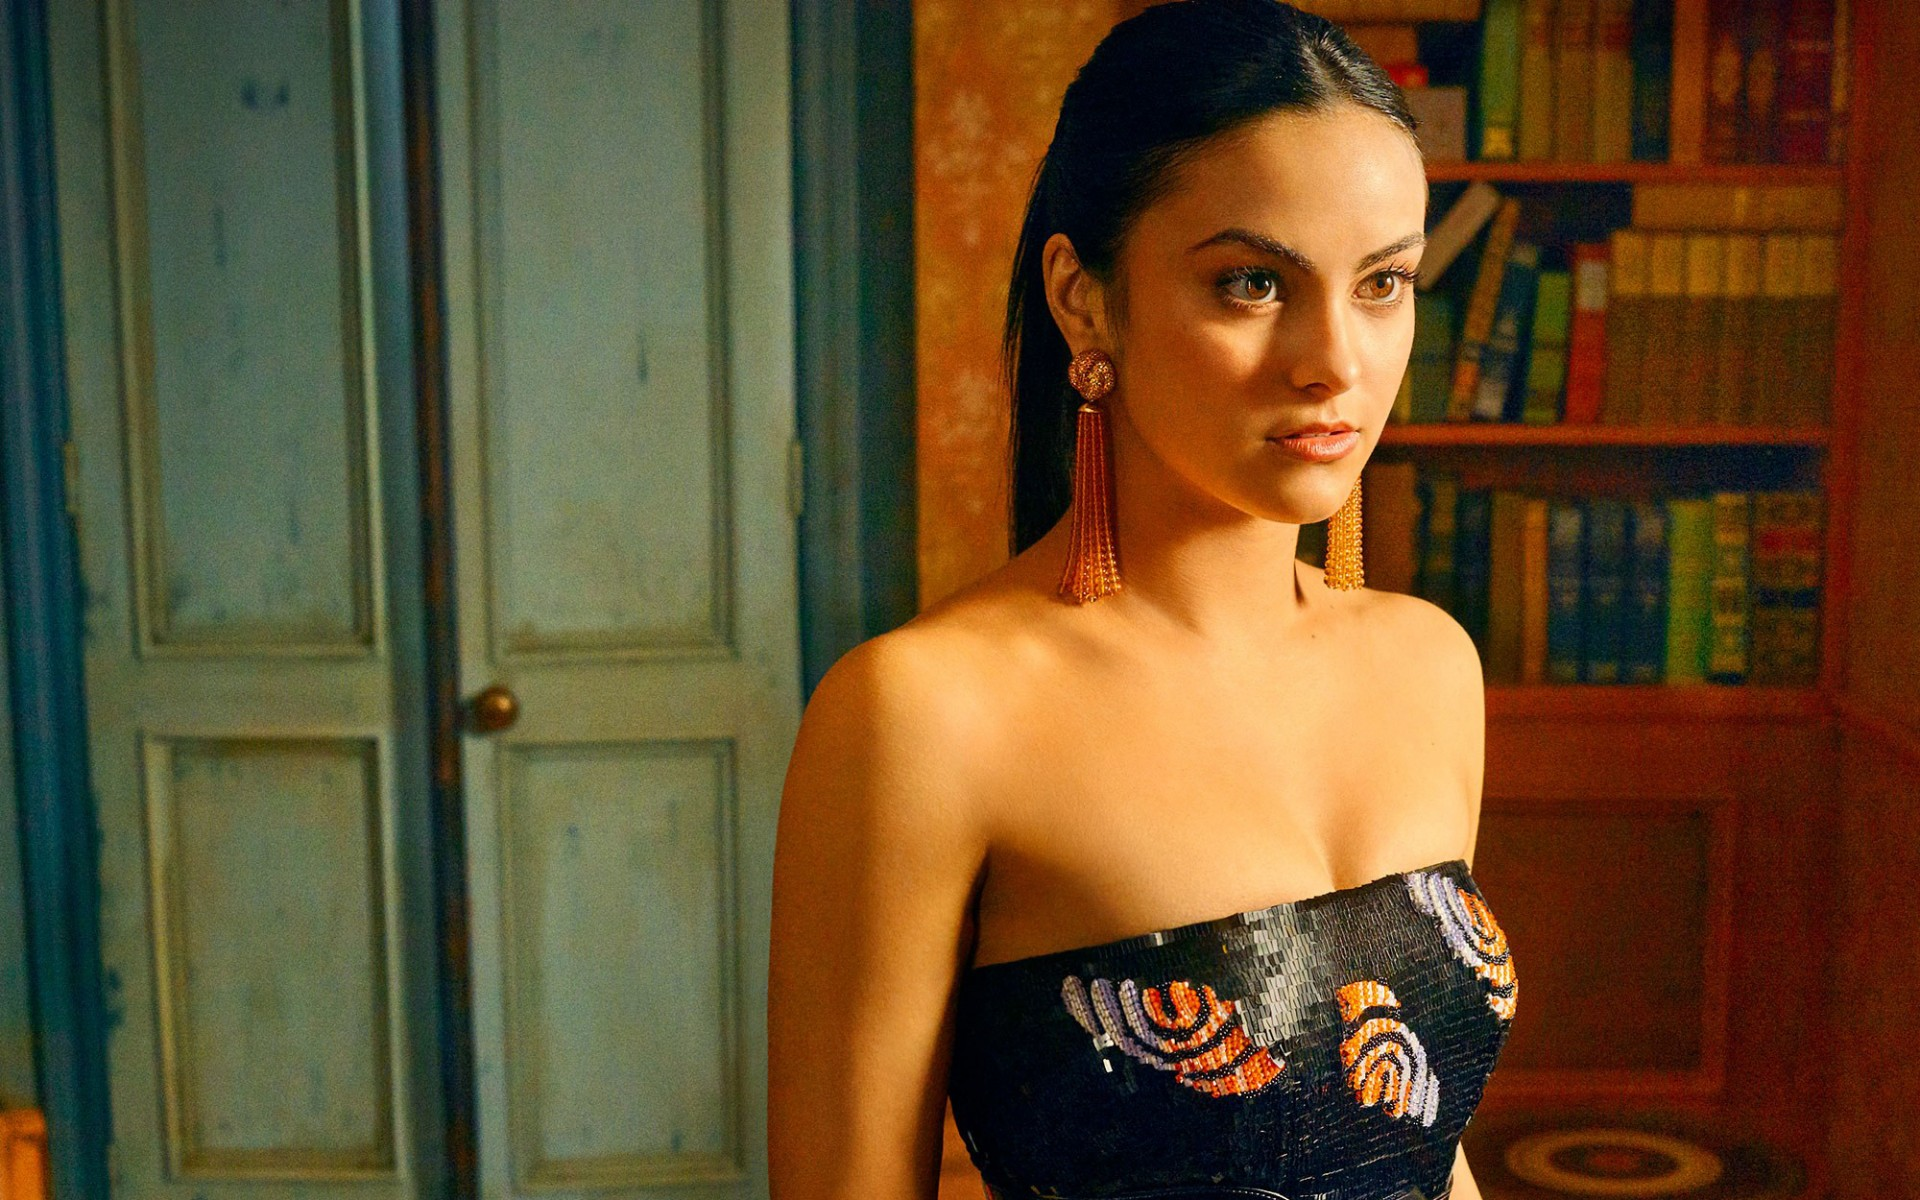 Cute Actress Wallpapers Download Camila Mendes Wallpapers Hd Wallpapers Id 23307